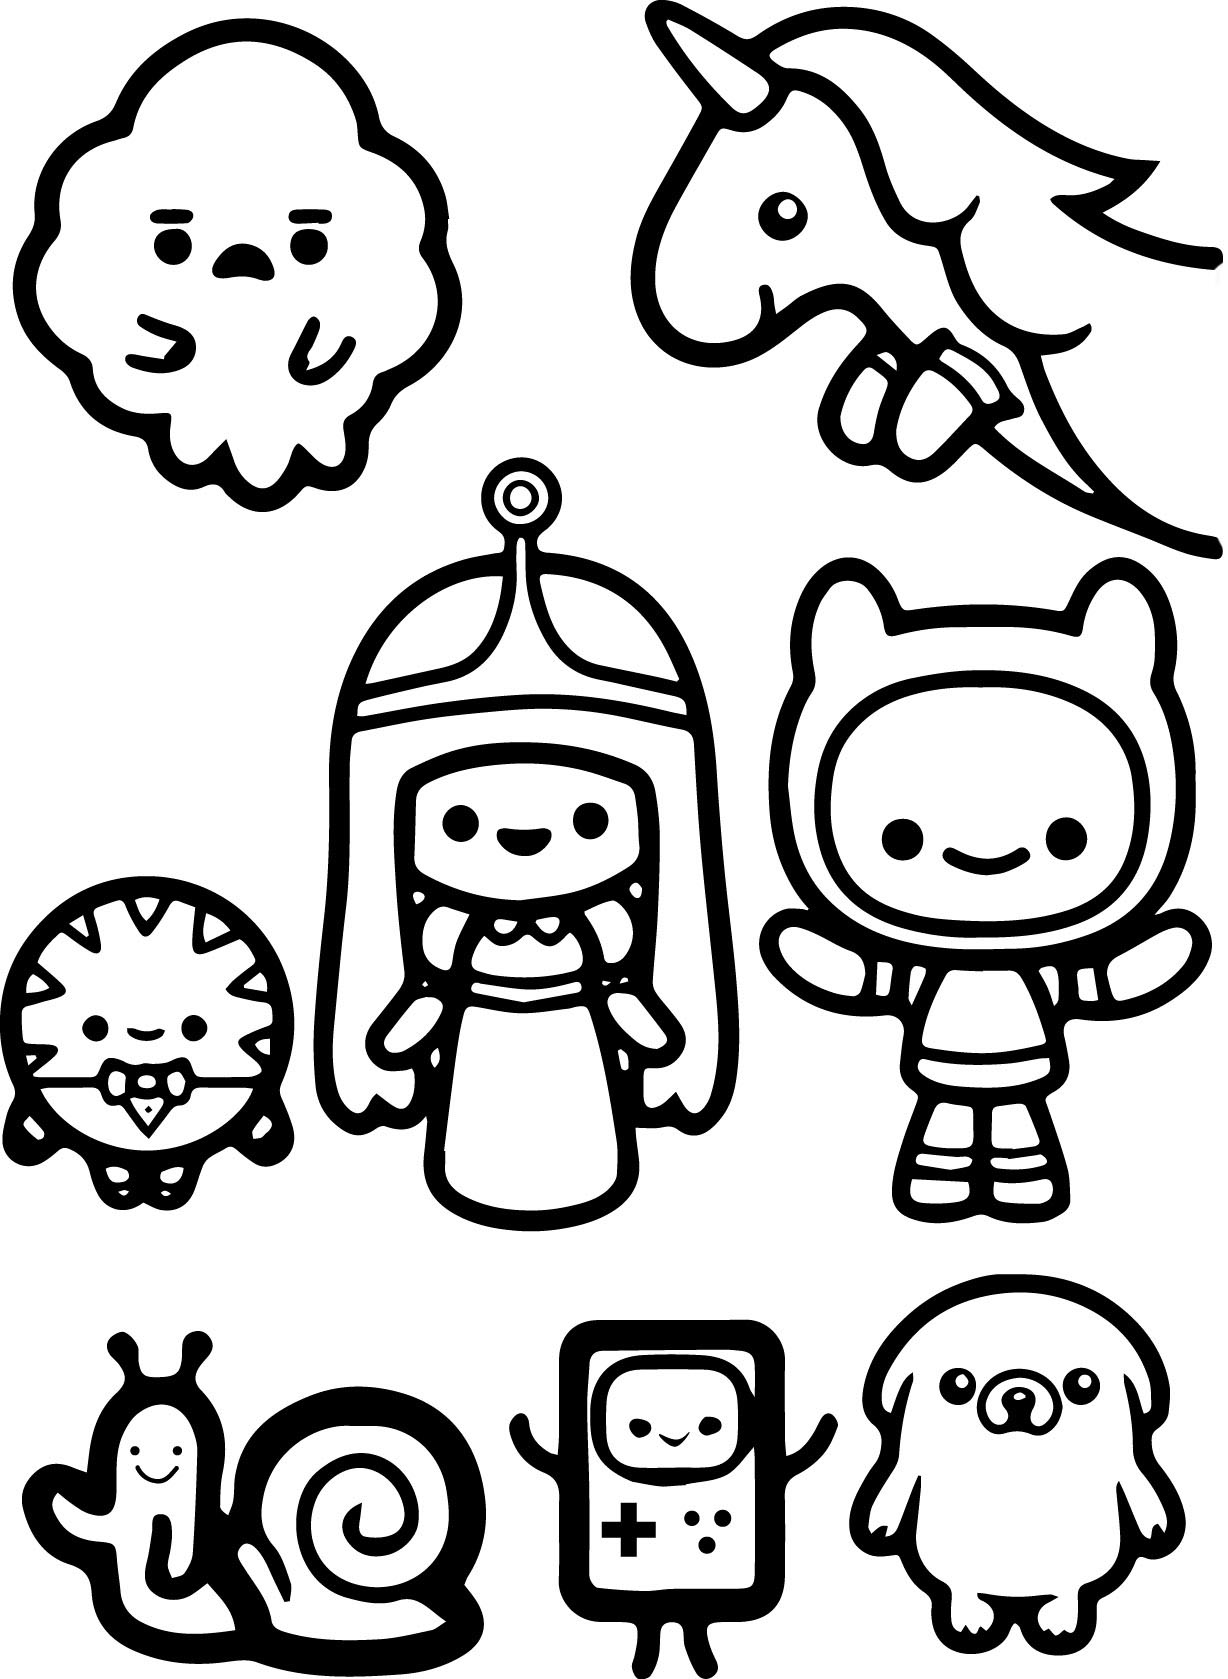 Adventure time characters chibi coloring pages